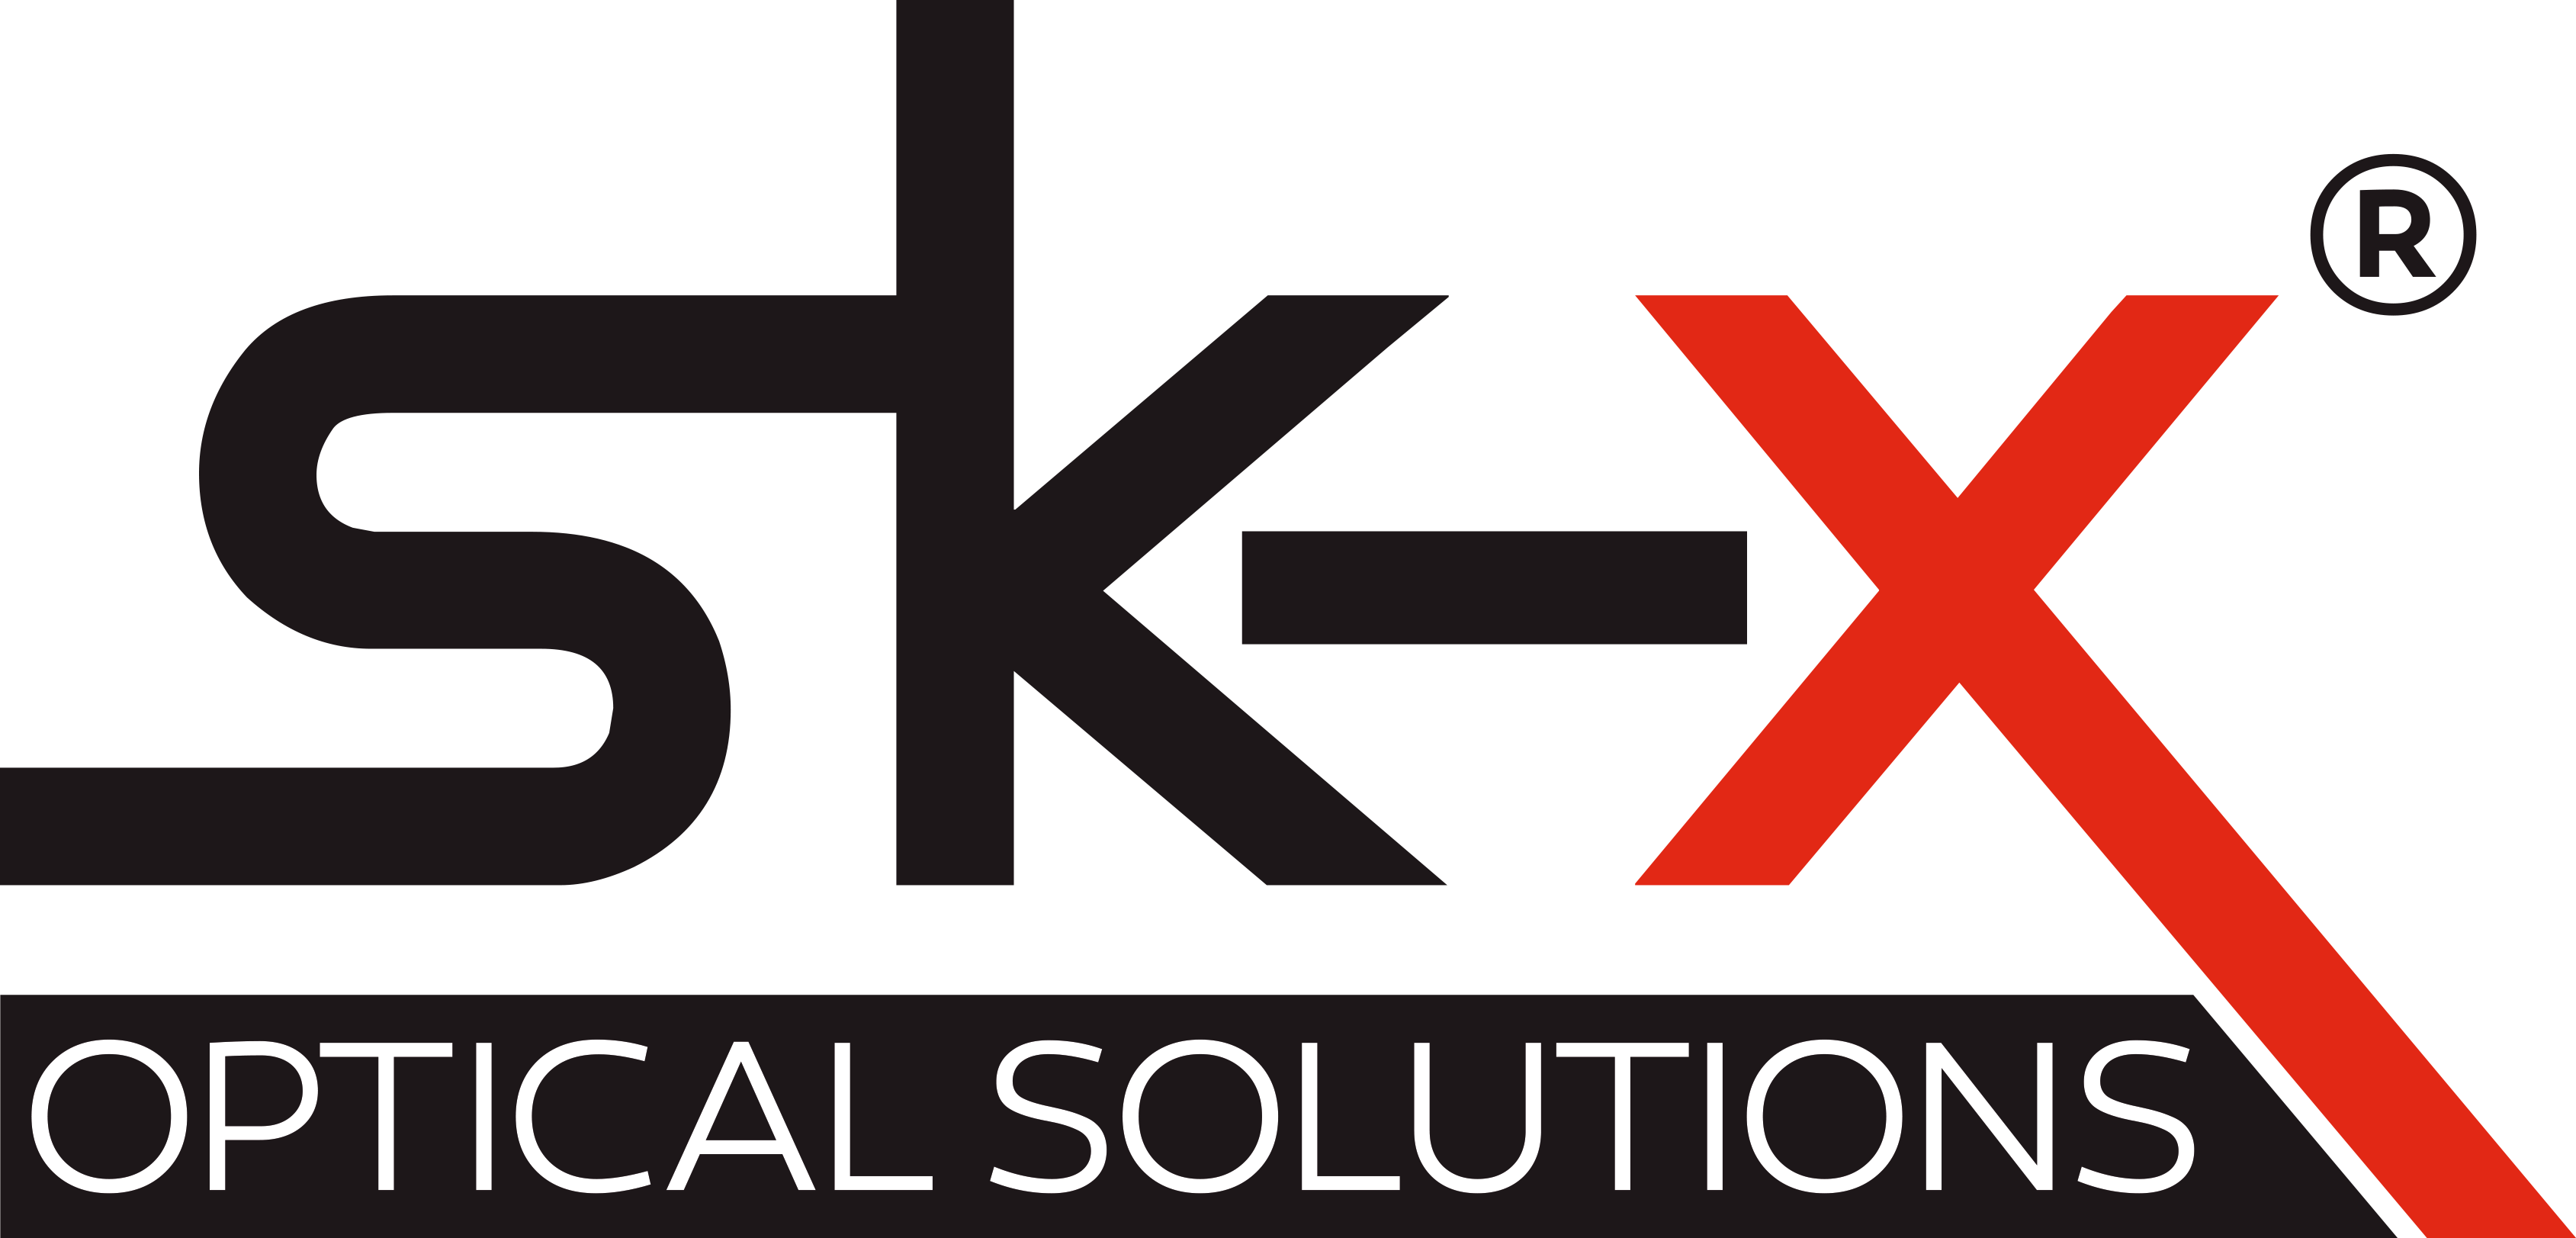 FR: SK-X® optical solutions GmbH